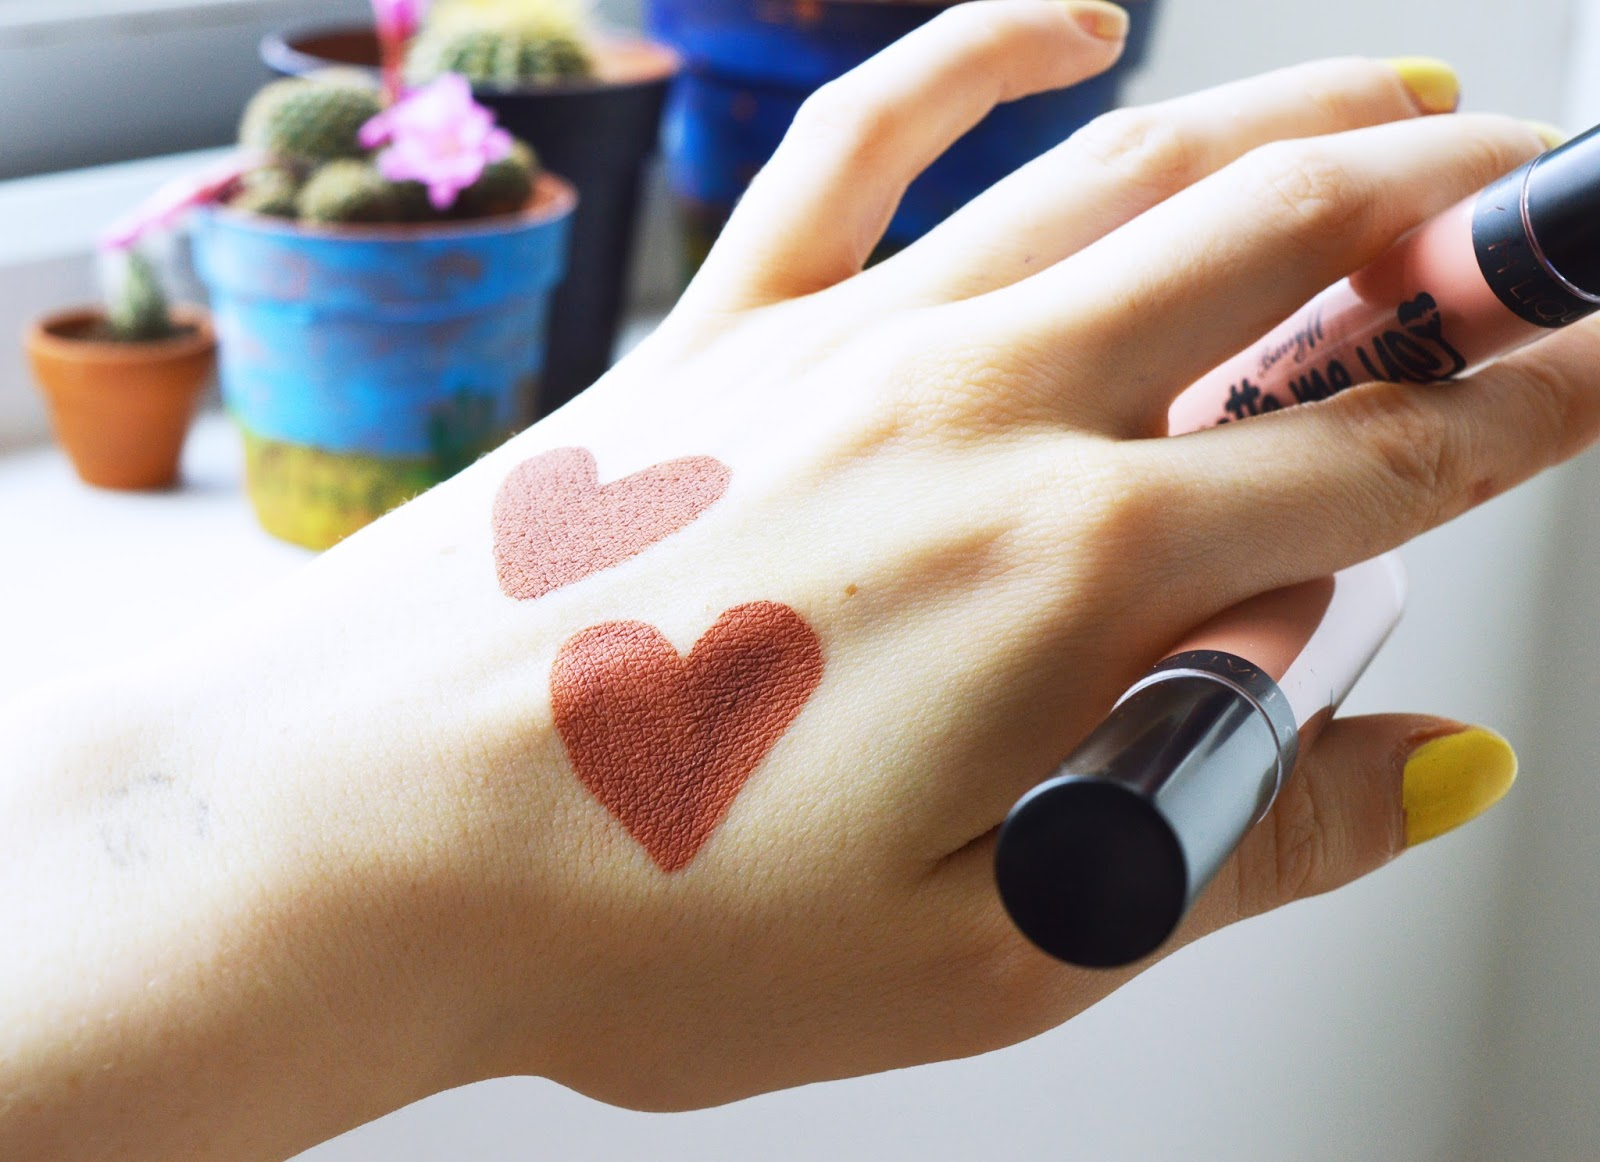 barry m liquid lip paints minimalist, on the scene